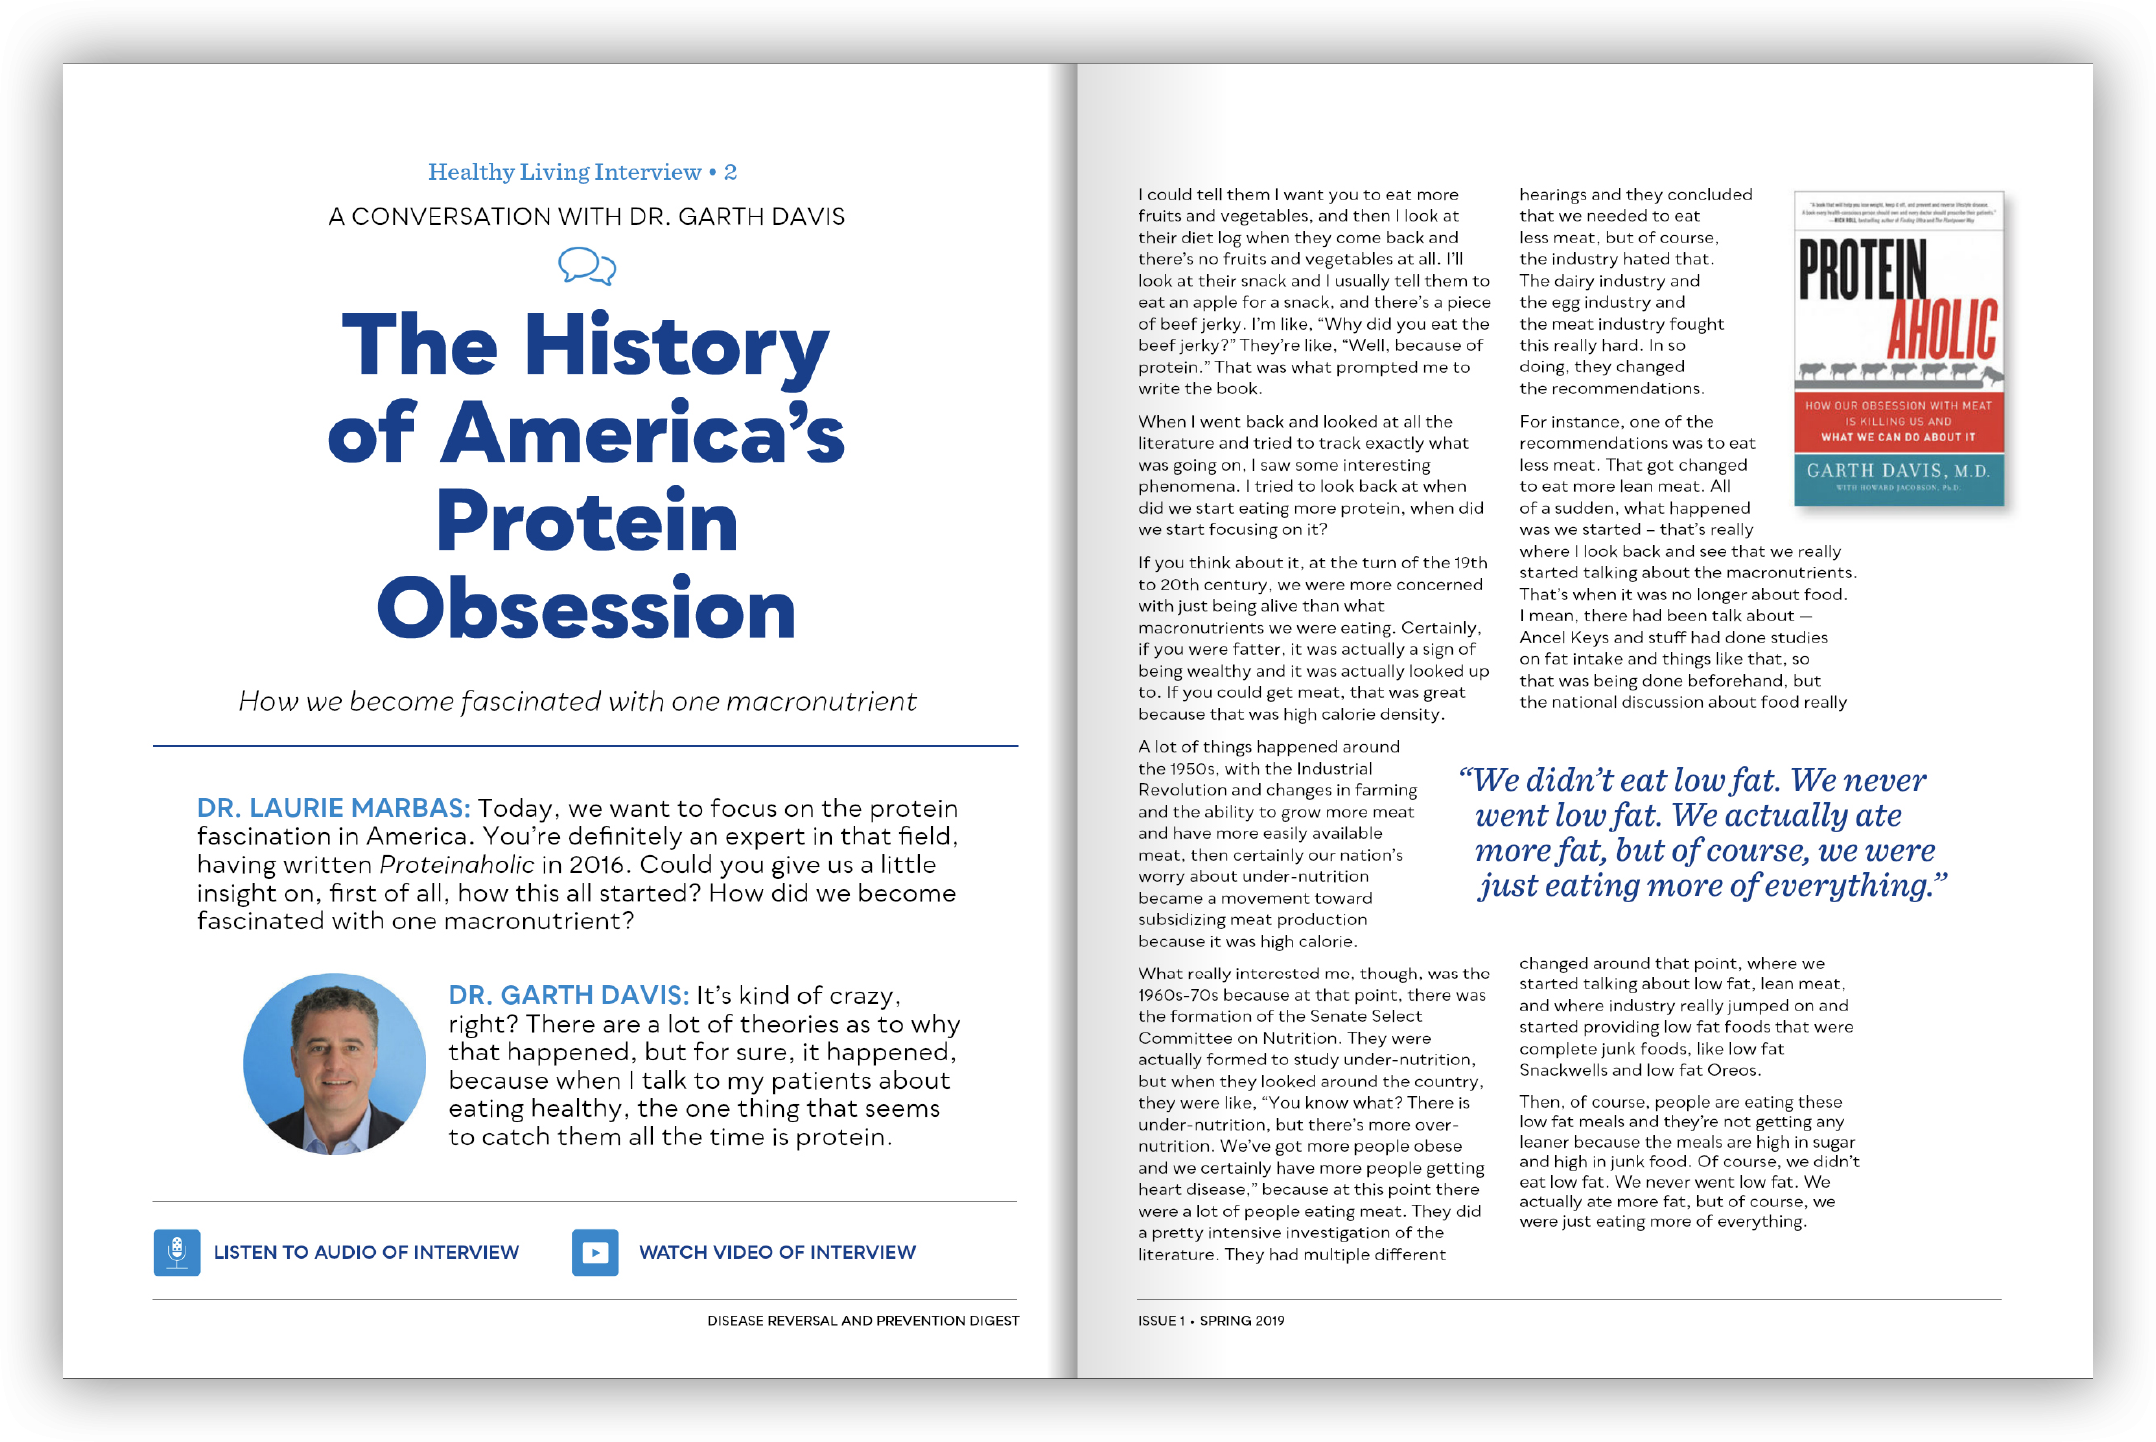 The History of America's Protein Obsession - Garth Davis, MD